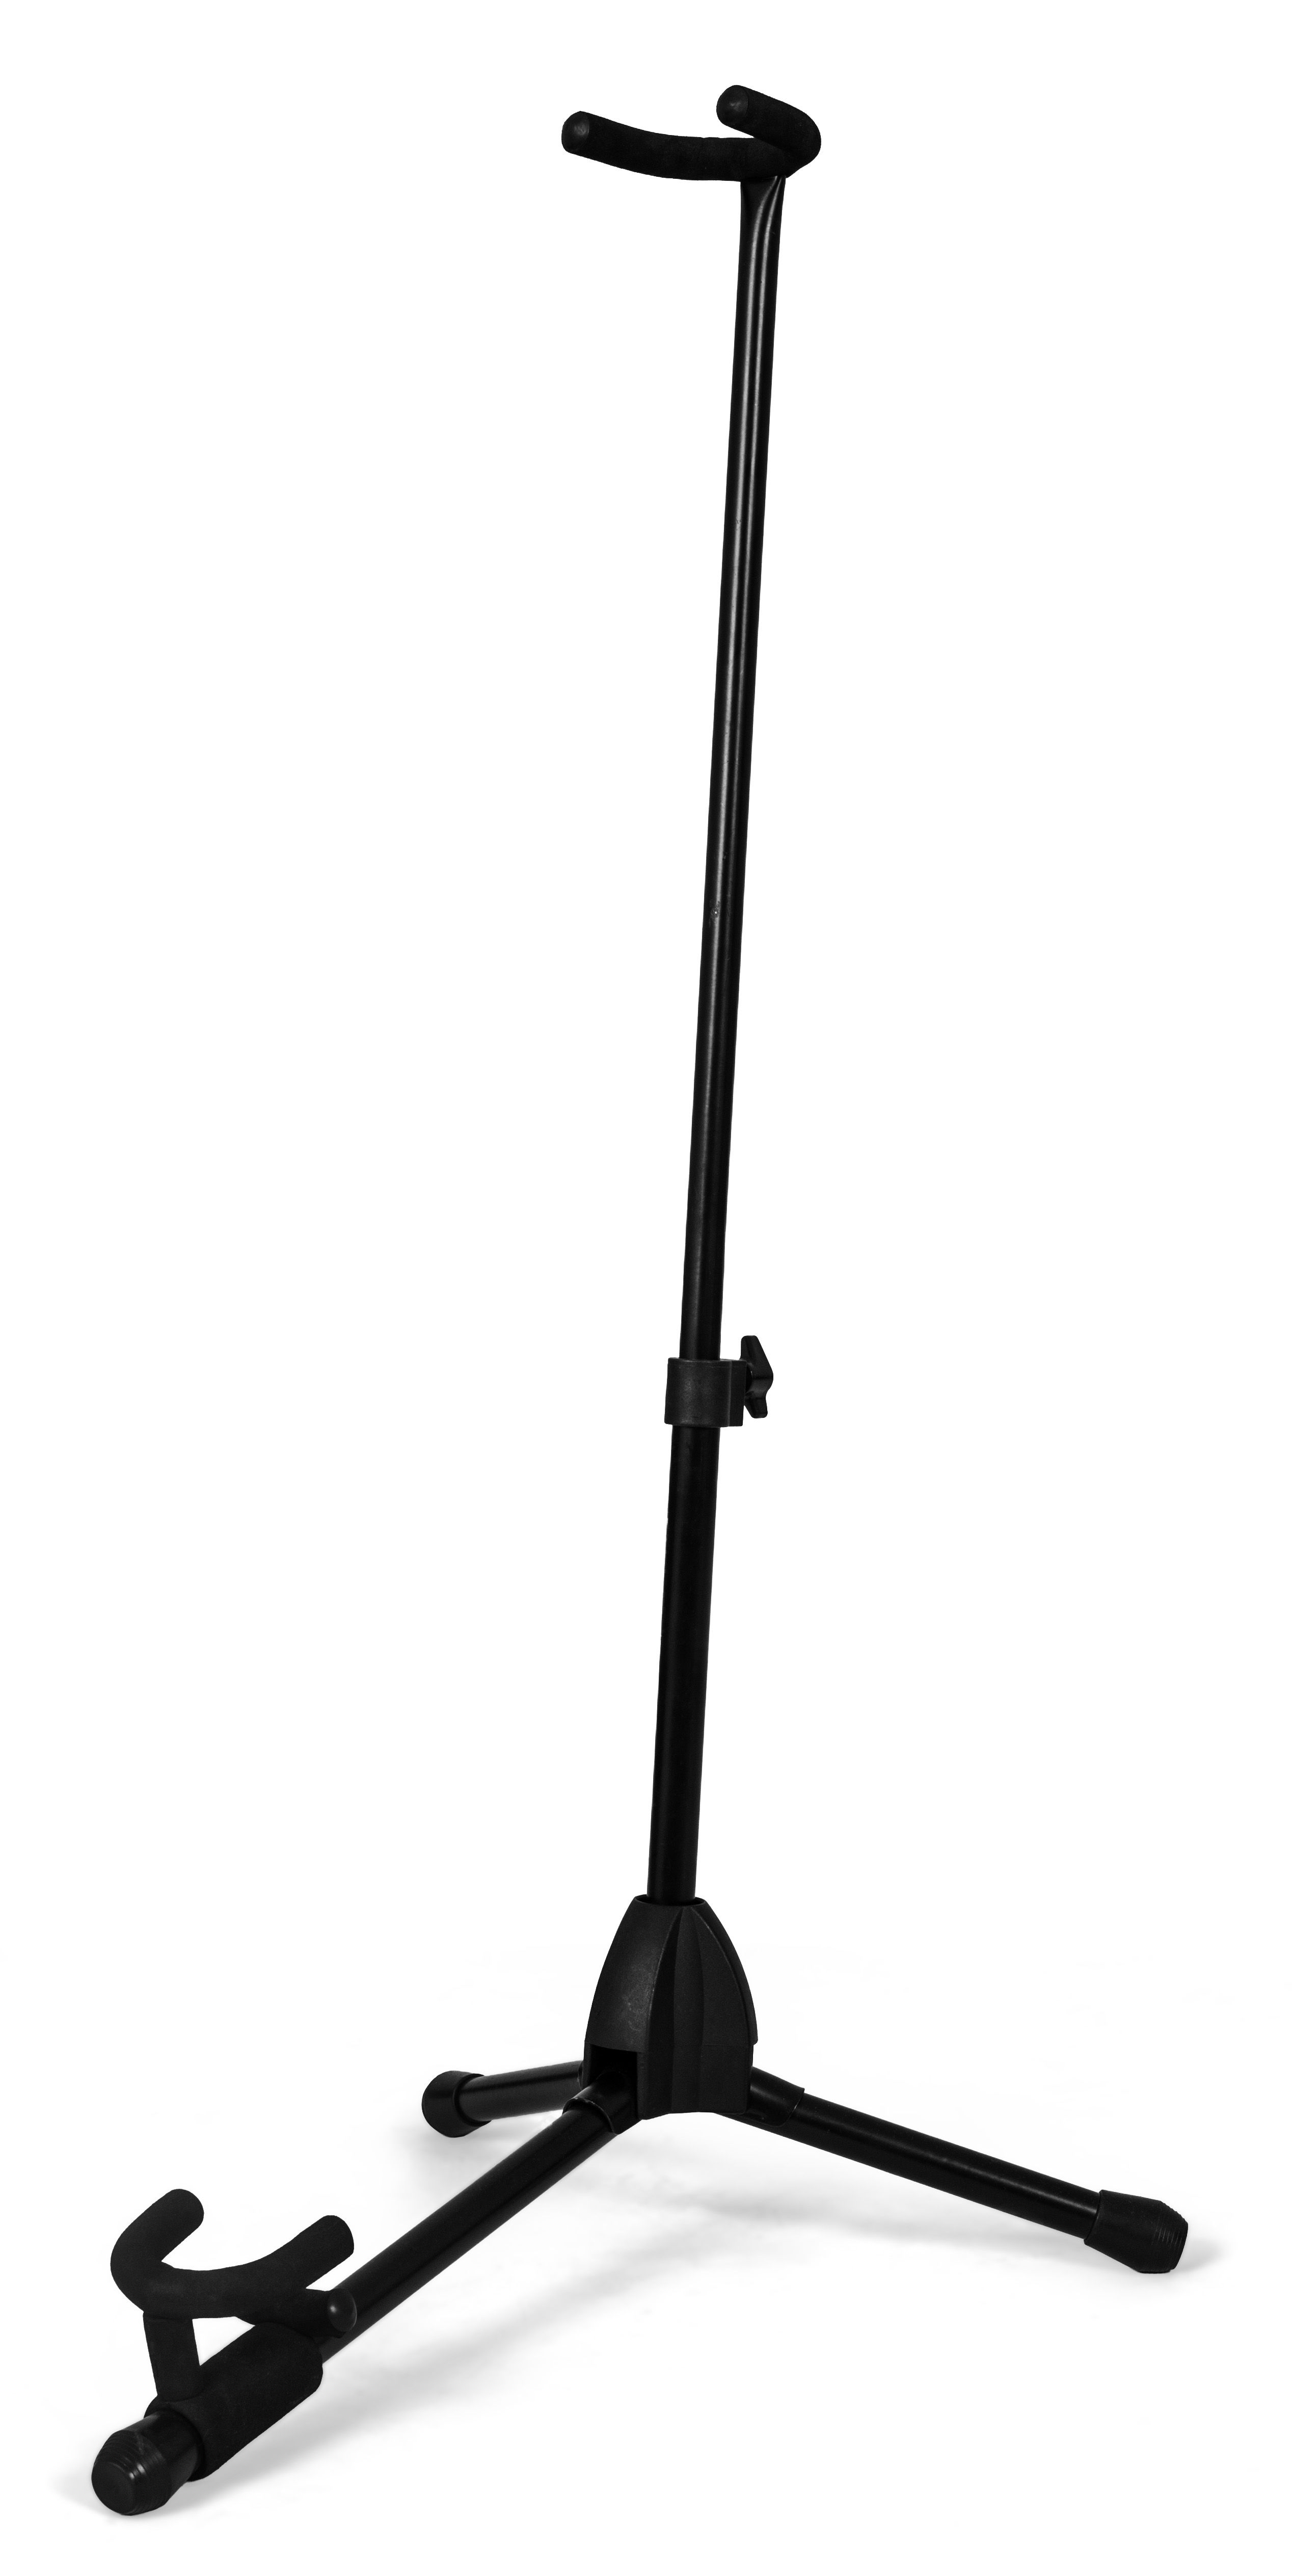 Nomad NIS-C045 Bass Clarinet Stand